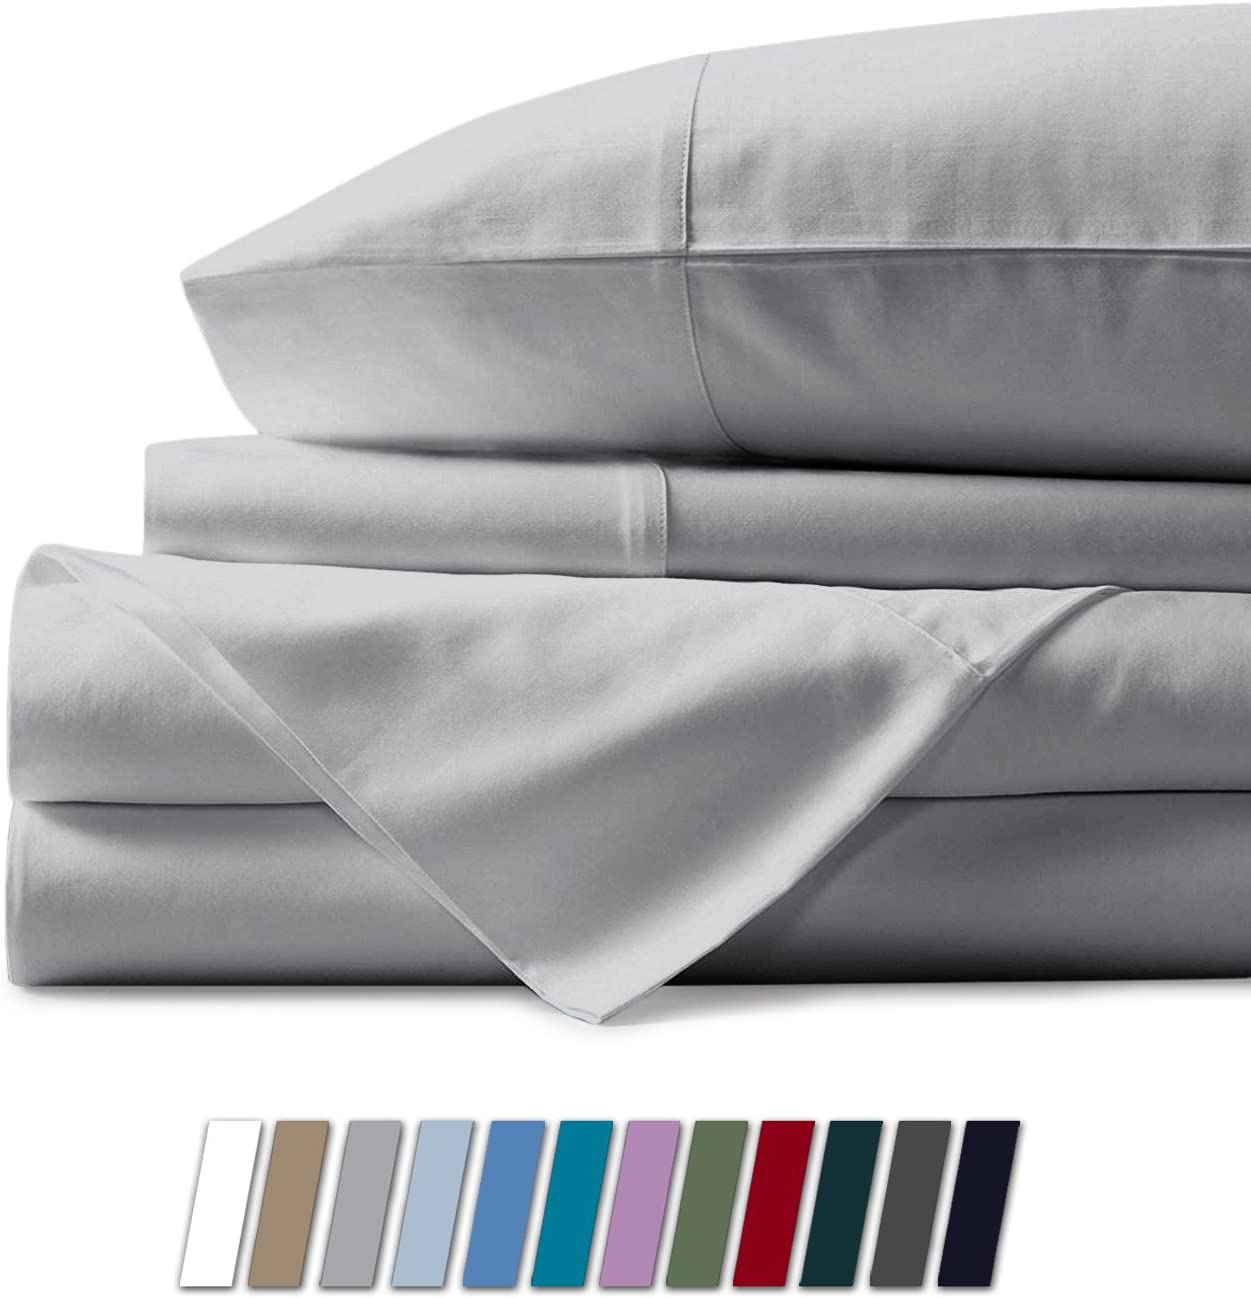 Mayfair Linen 100% Egyptian Cotton Sheets, Silver King Sheets Set, 600 Thread Count Long Staple Cotton, Sateen Weave for Soft and Silky Feel, Fits Mattress Upto 18'' DEEP Pocket